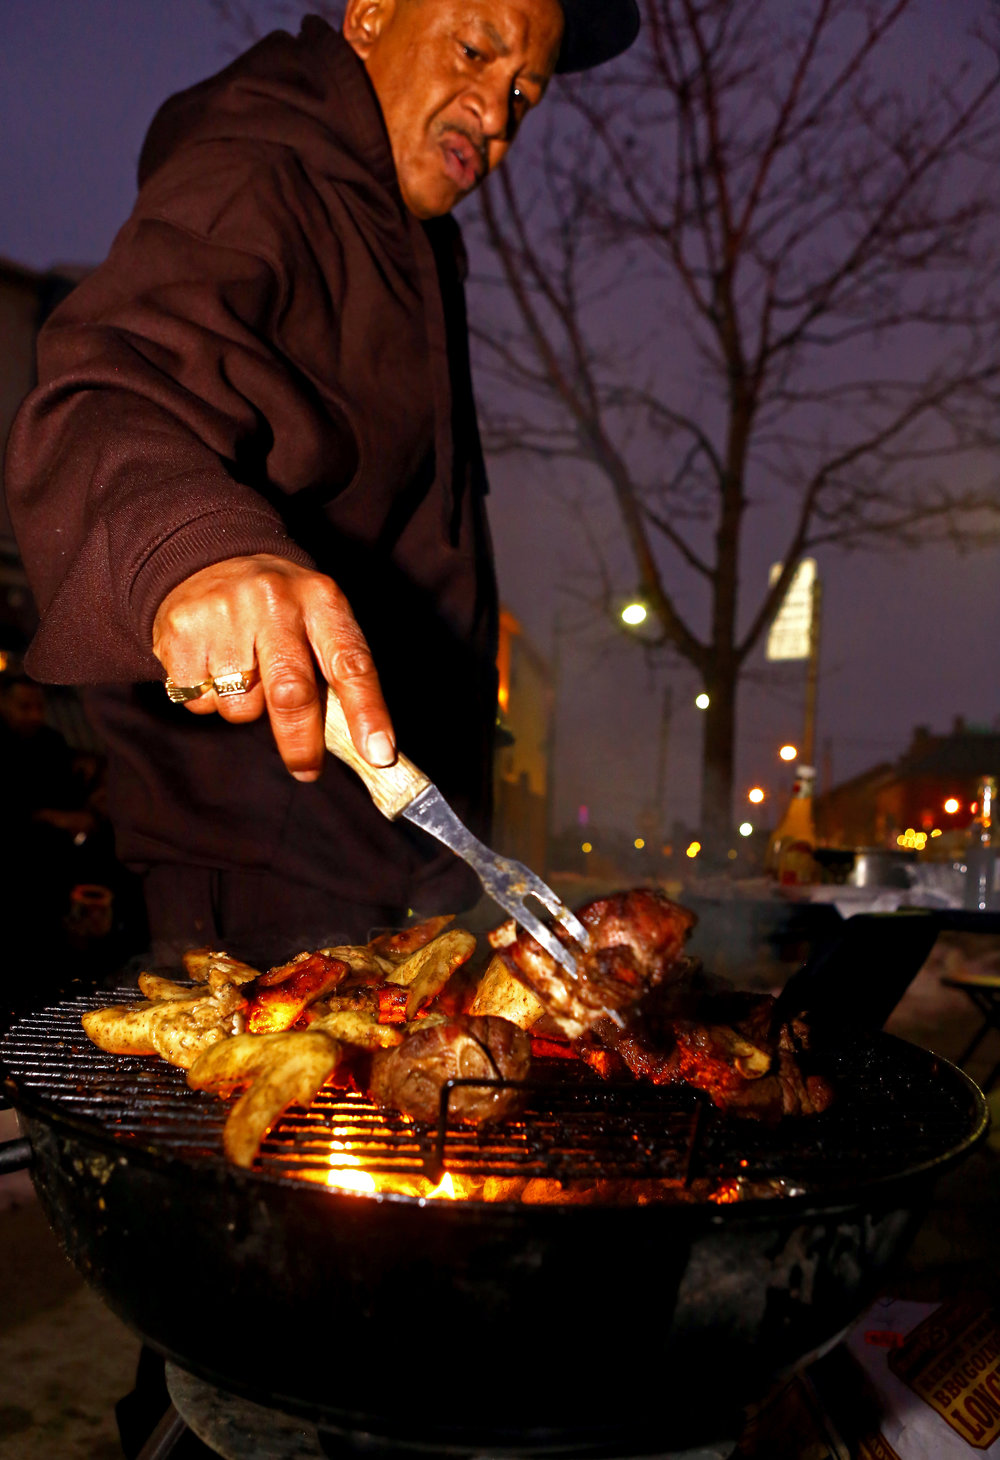 """Chet Mason of Toledo grills chicken on a charcoal grill on the sidewalk at the intersection of Adams Street and 16th Street for anyone who wants something to eat in Toledo, Oh. on Saturday, Dec. 24, 2016. Mr. Mason said """"Me selling food is a sin"""" and went on to say that he typically cooks food on to give away throughout the year."""